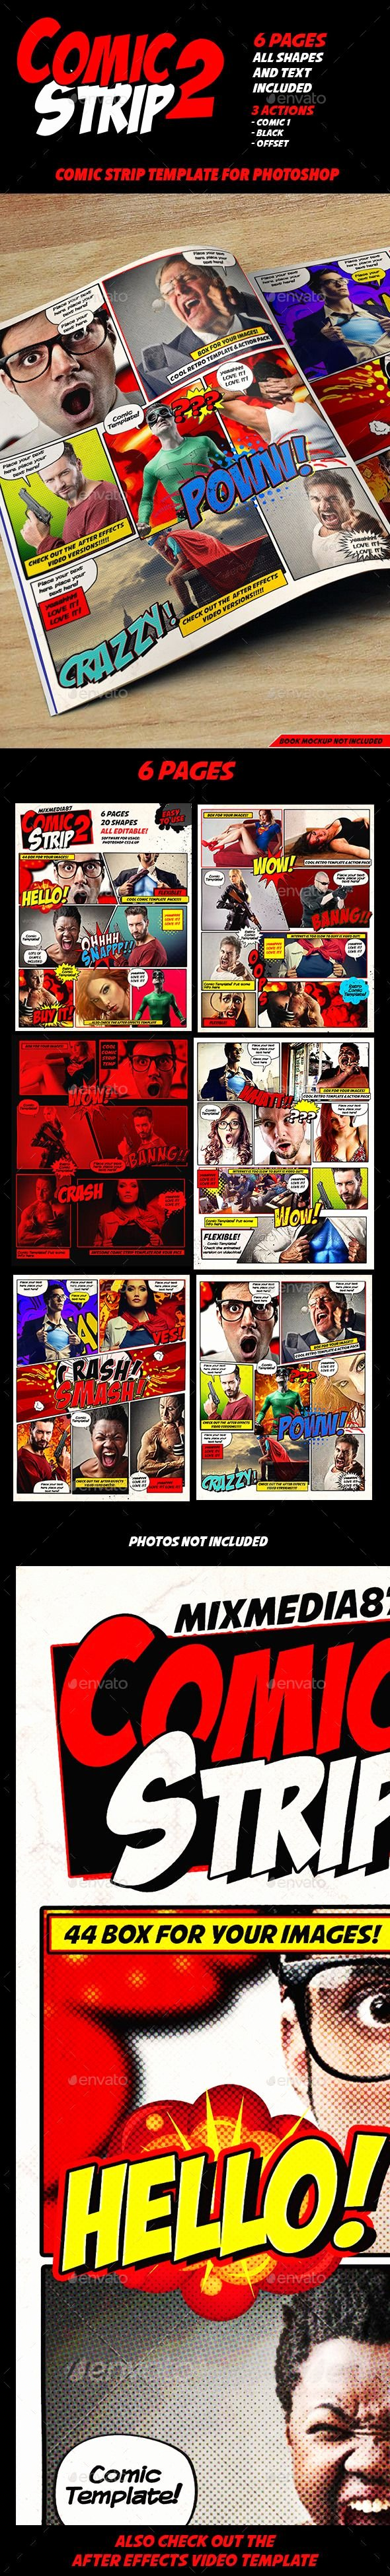 Comic Book Template Photoshop Inspirational 1000 Images About Shop Files On Pinterest